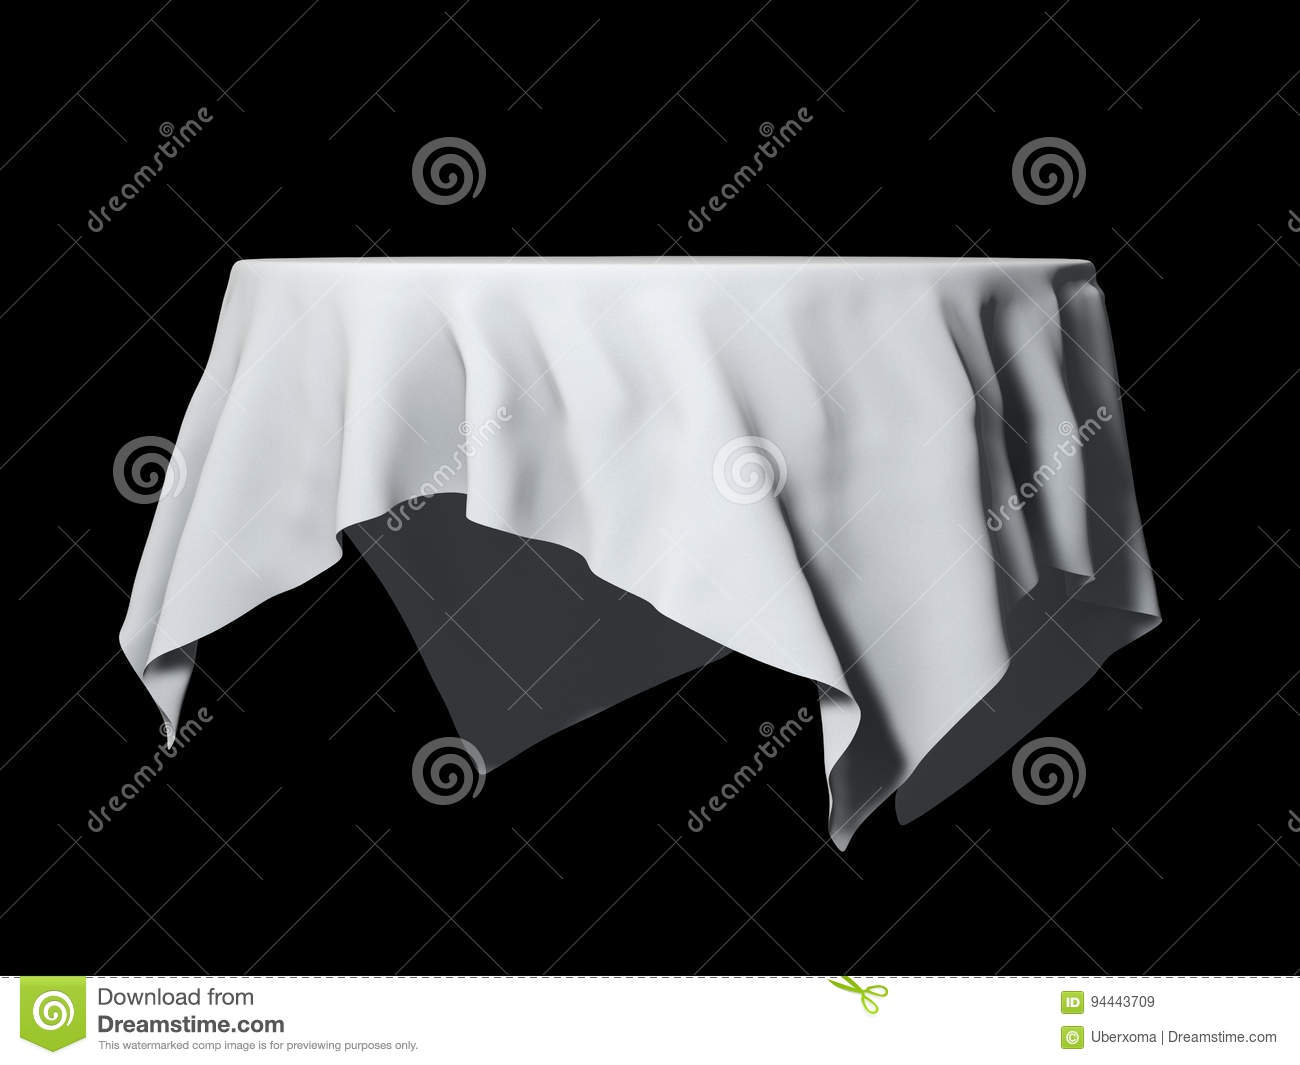 White Round Table Cloth Mockup Isolated On Black 3d Illustration